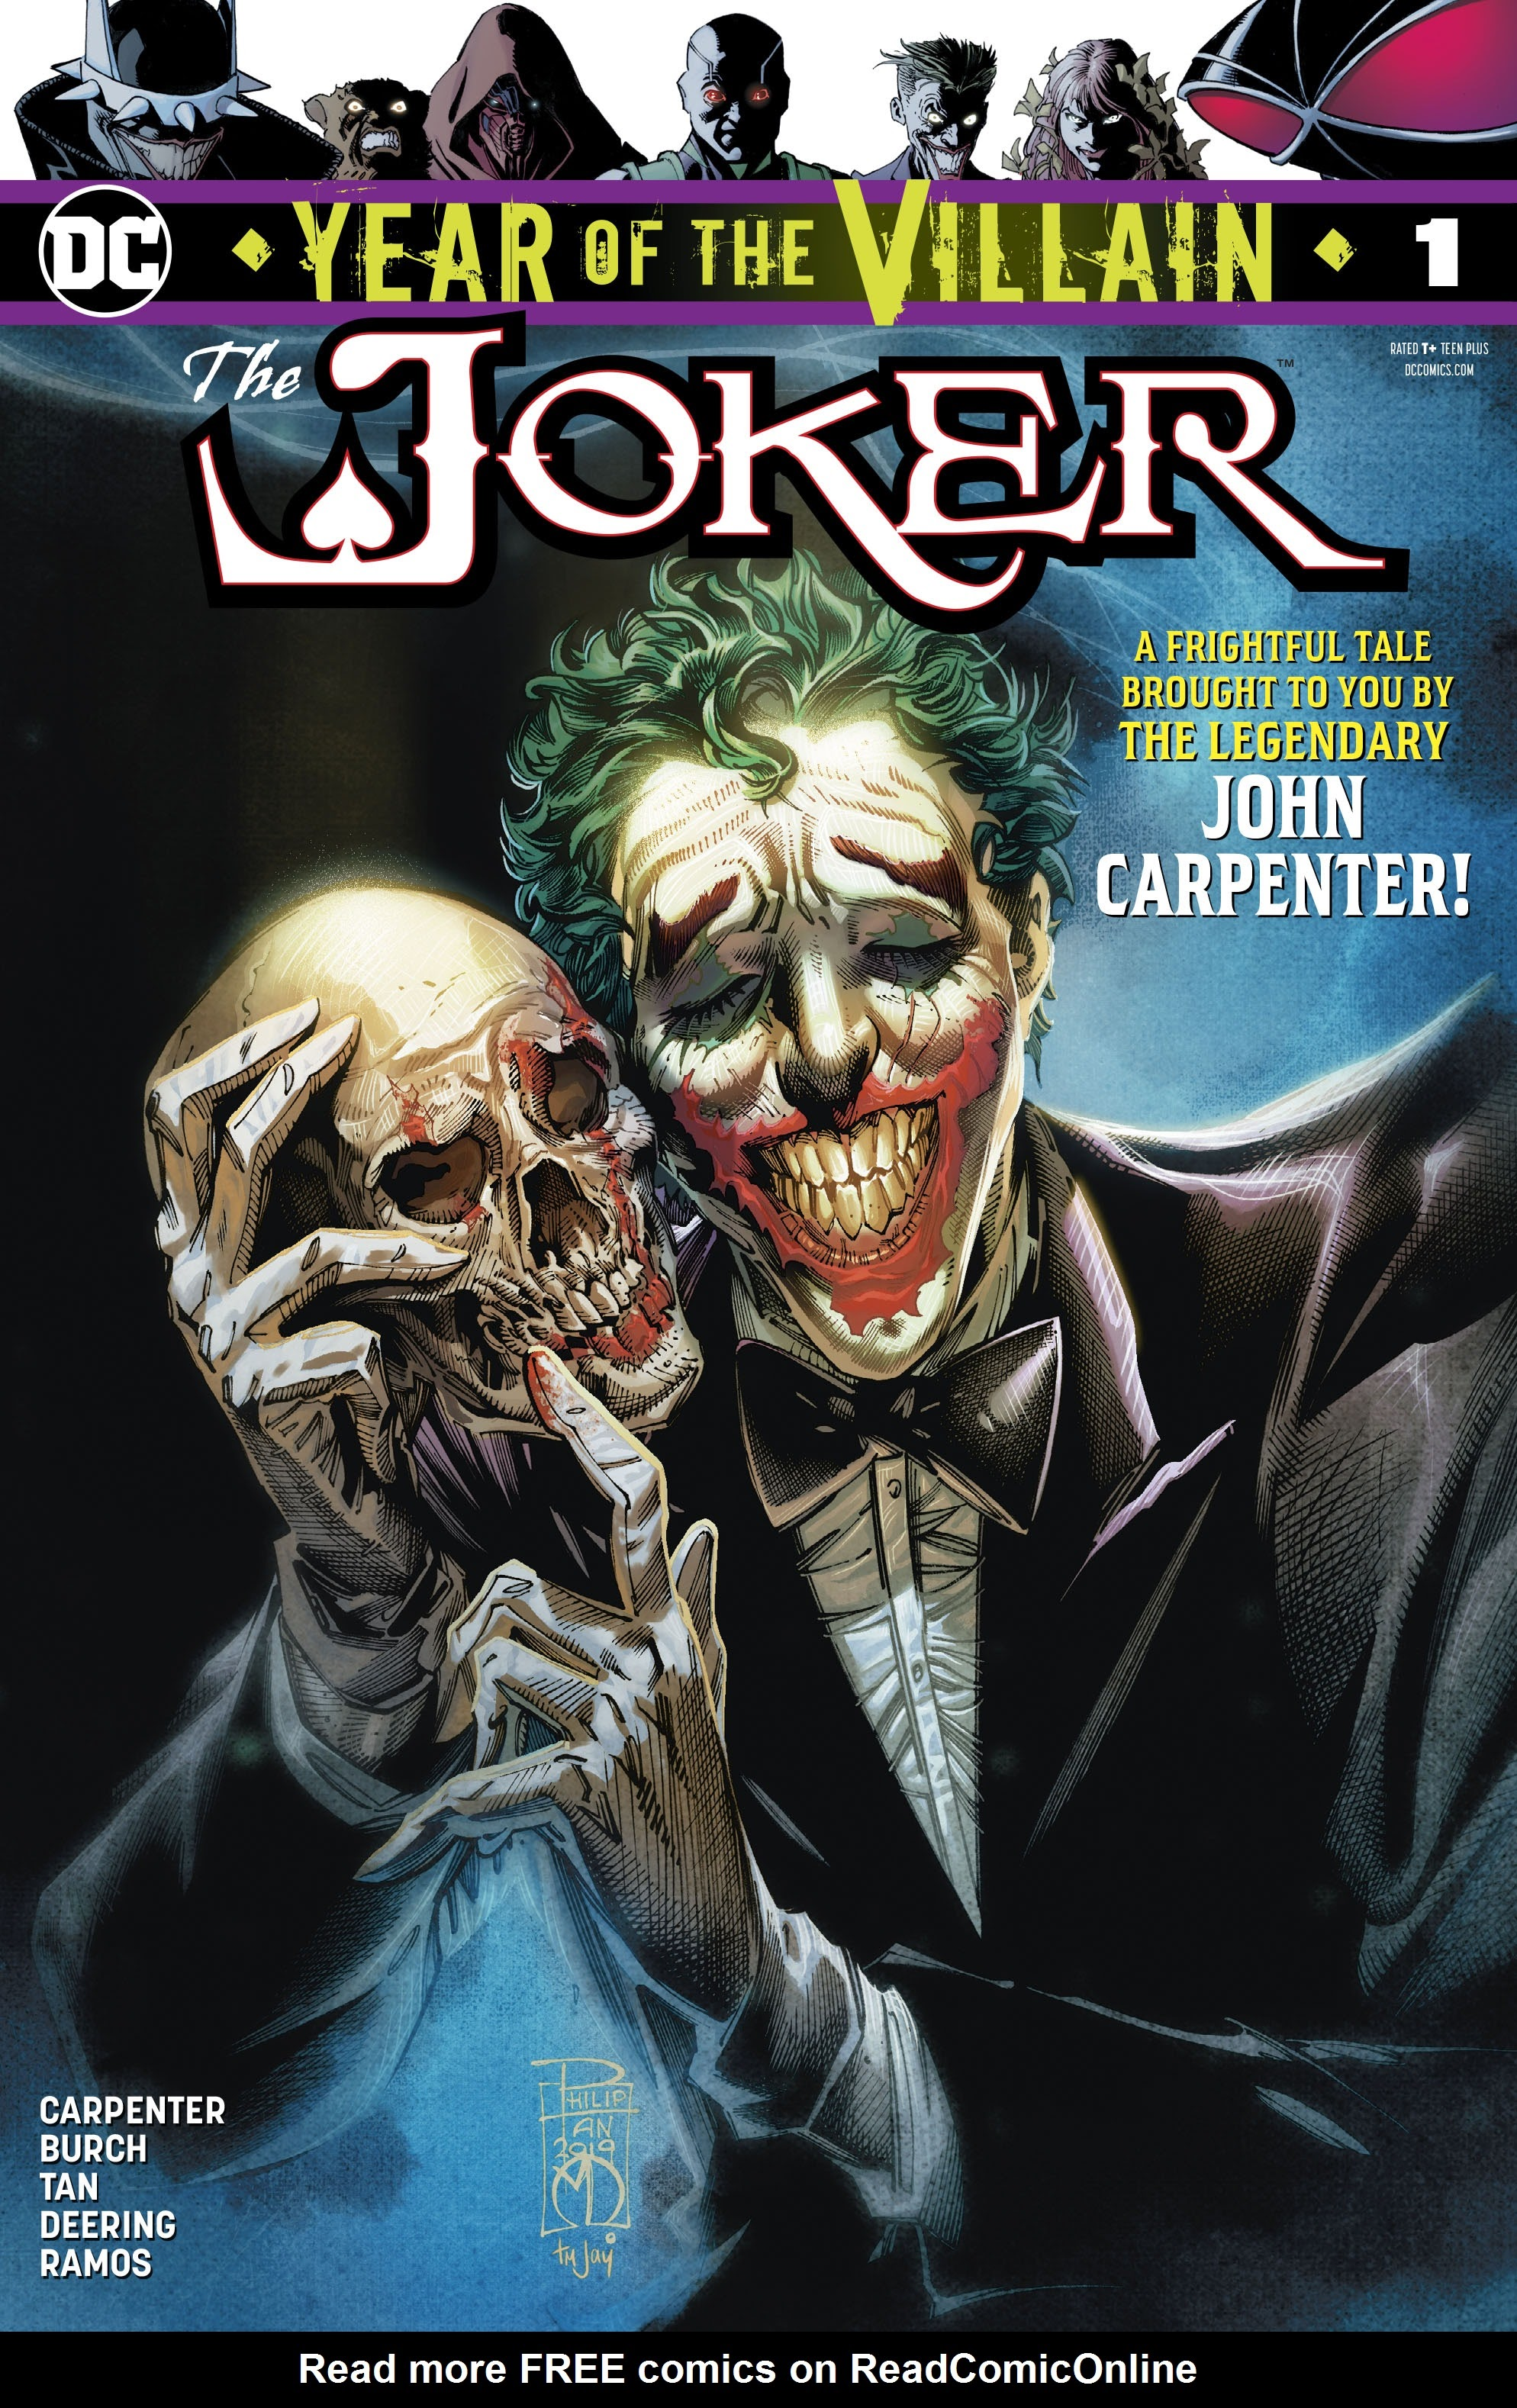 Joker: Year of the Villain Full Page 1